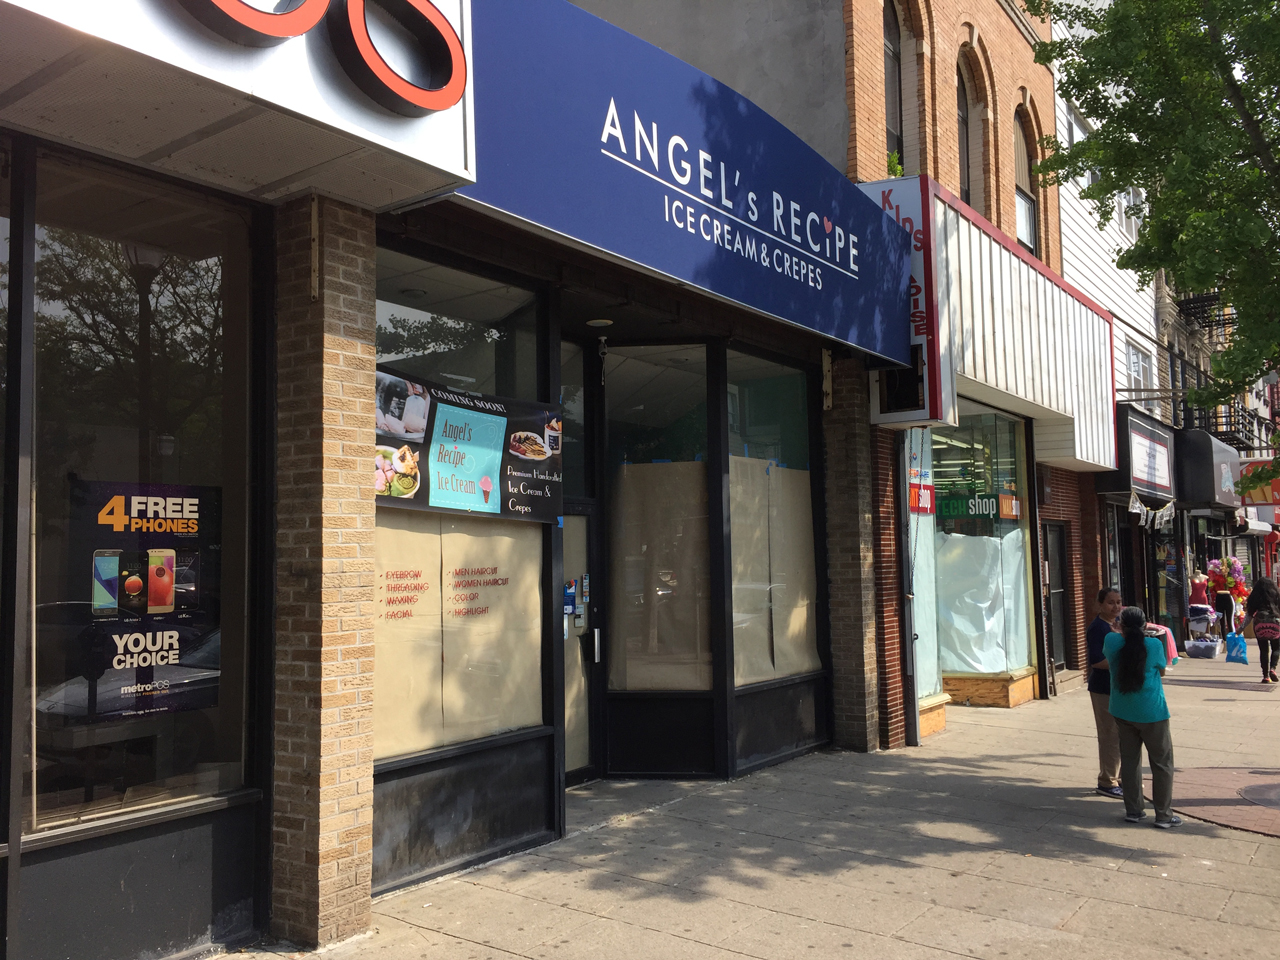 Angel's Recipe Ice Cream Moving to The Heights | Jersey Digs